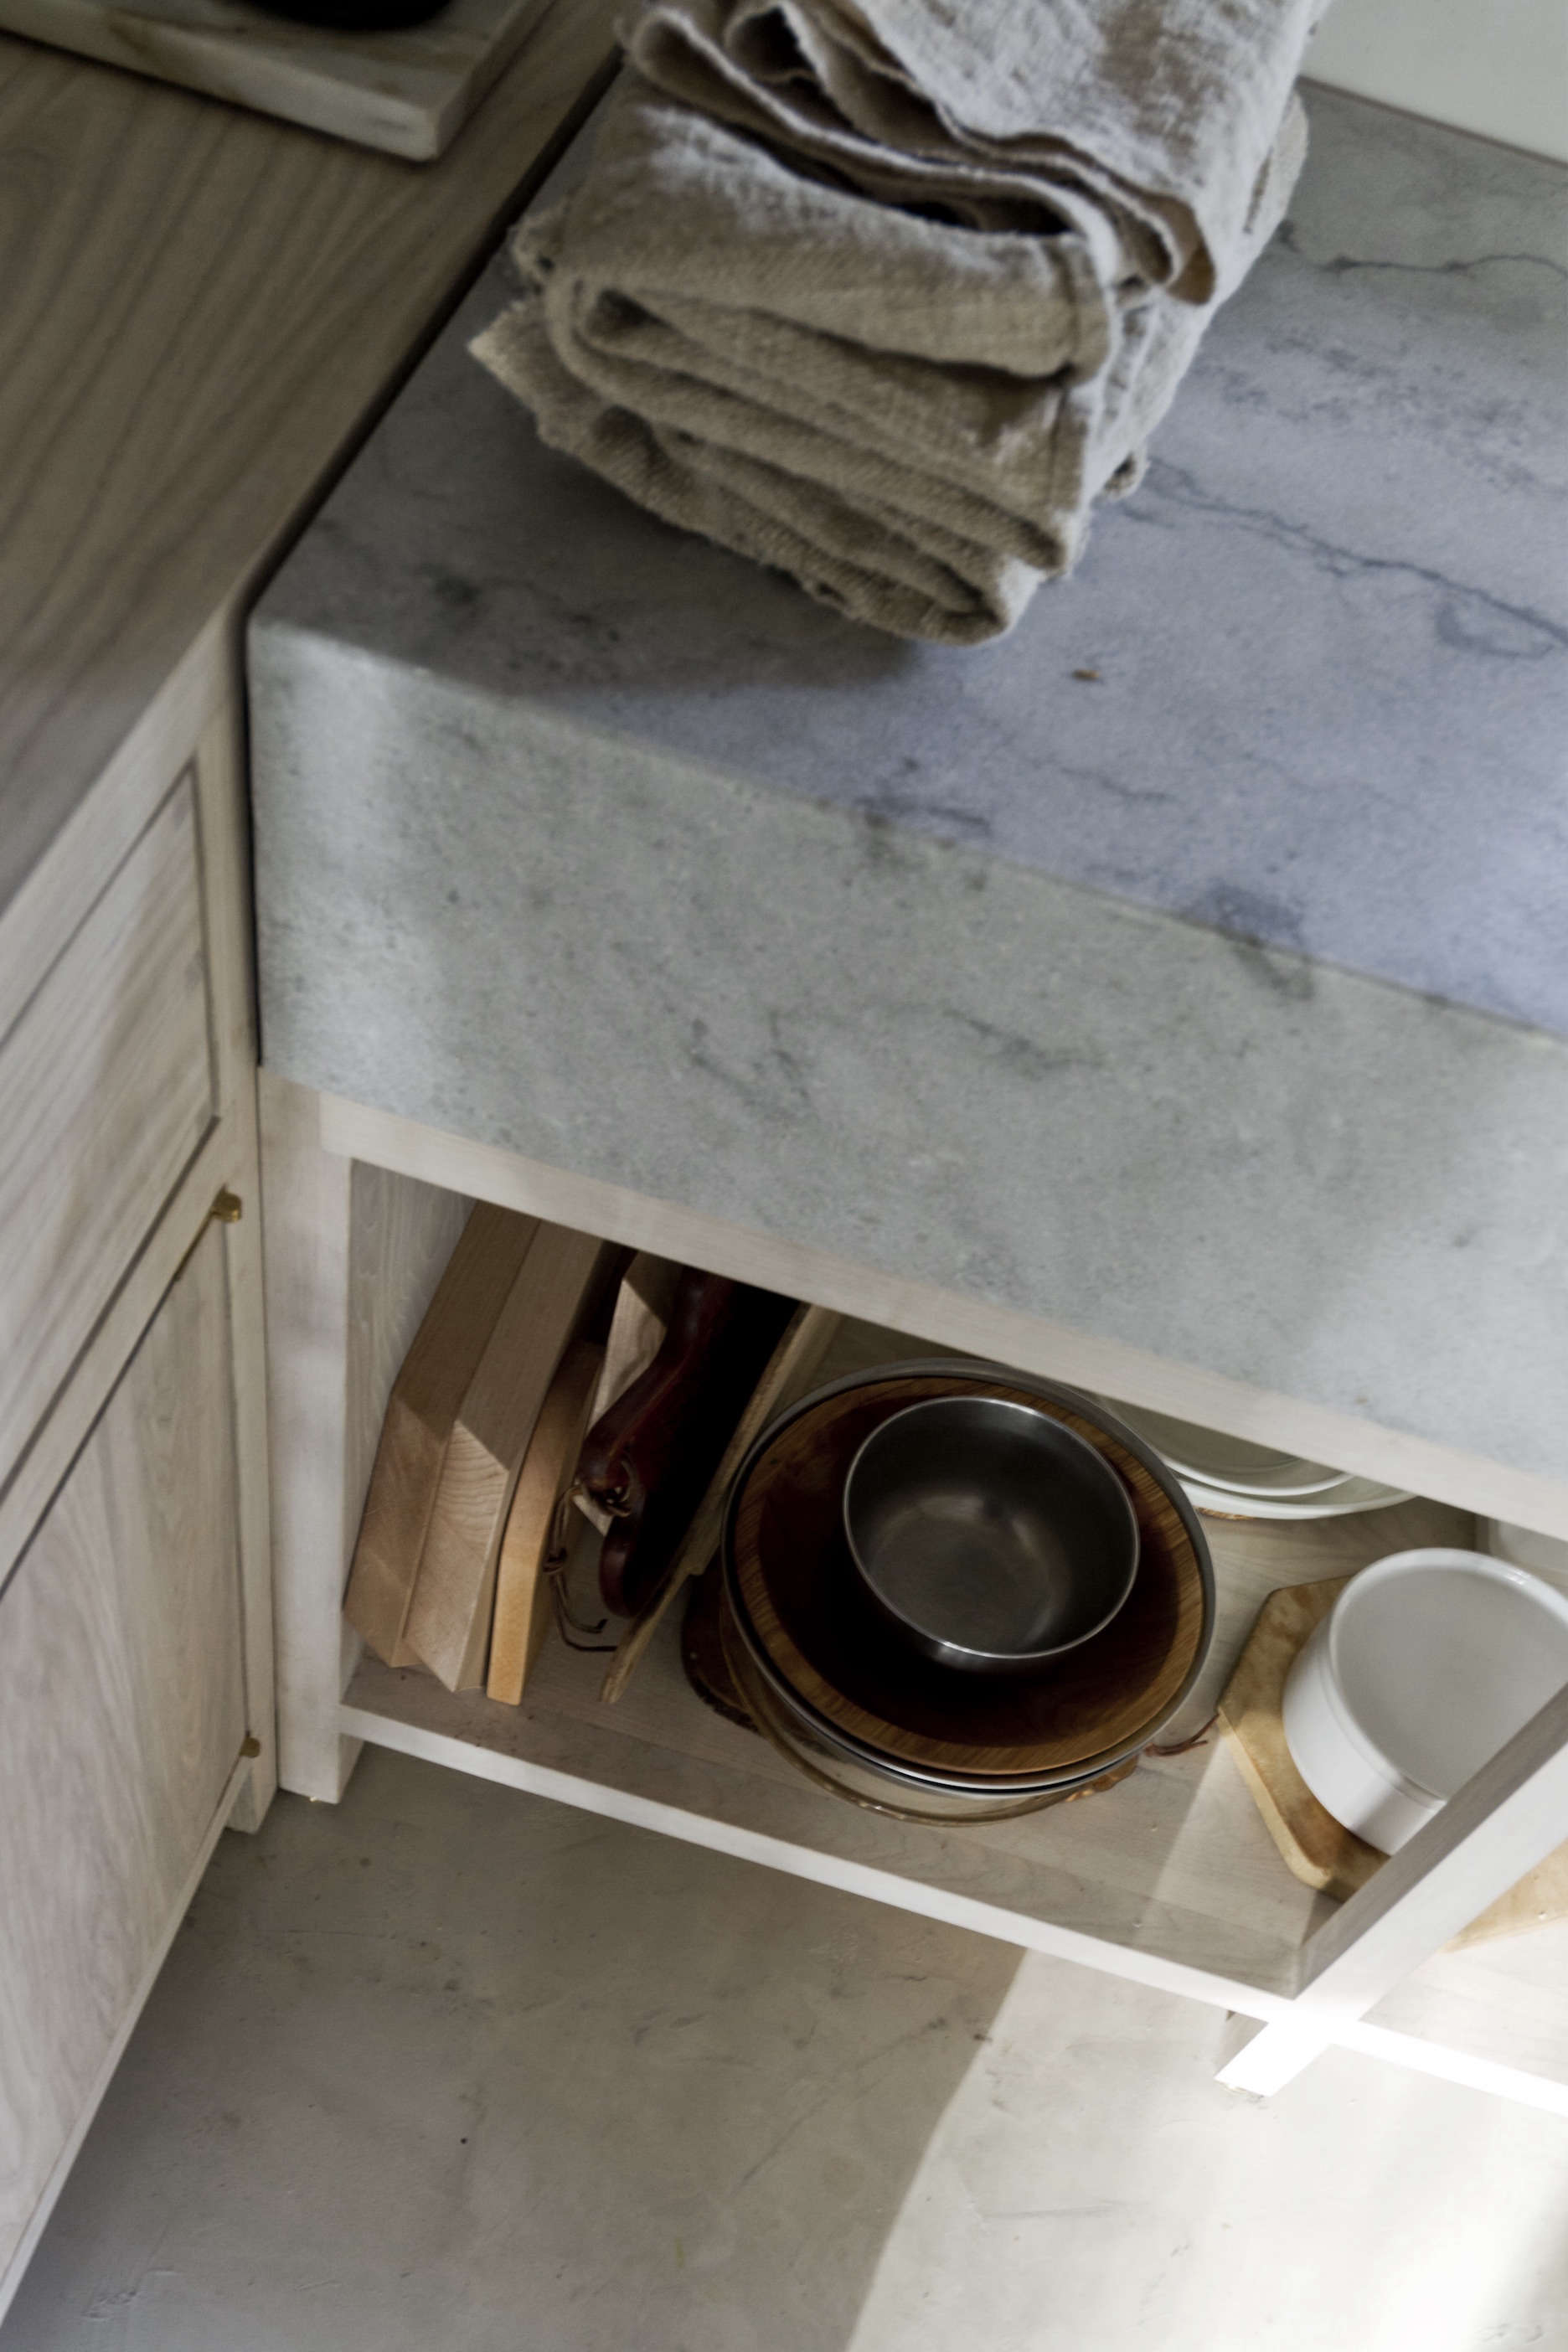 Cutting boards and pots and pans—all wood, metal, and white enamelware—are stored under the counter.David&#8